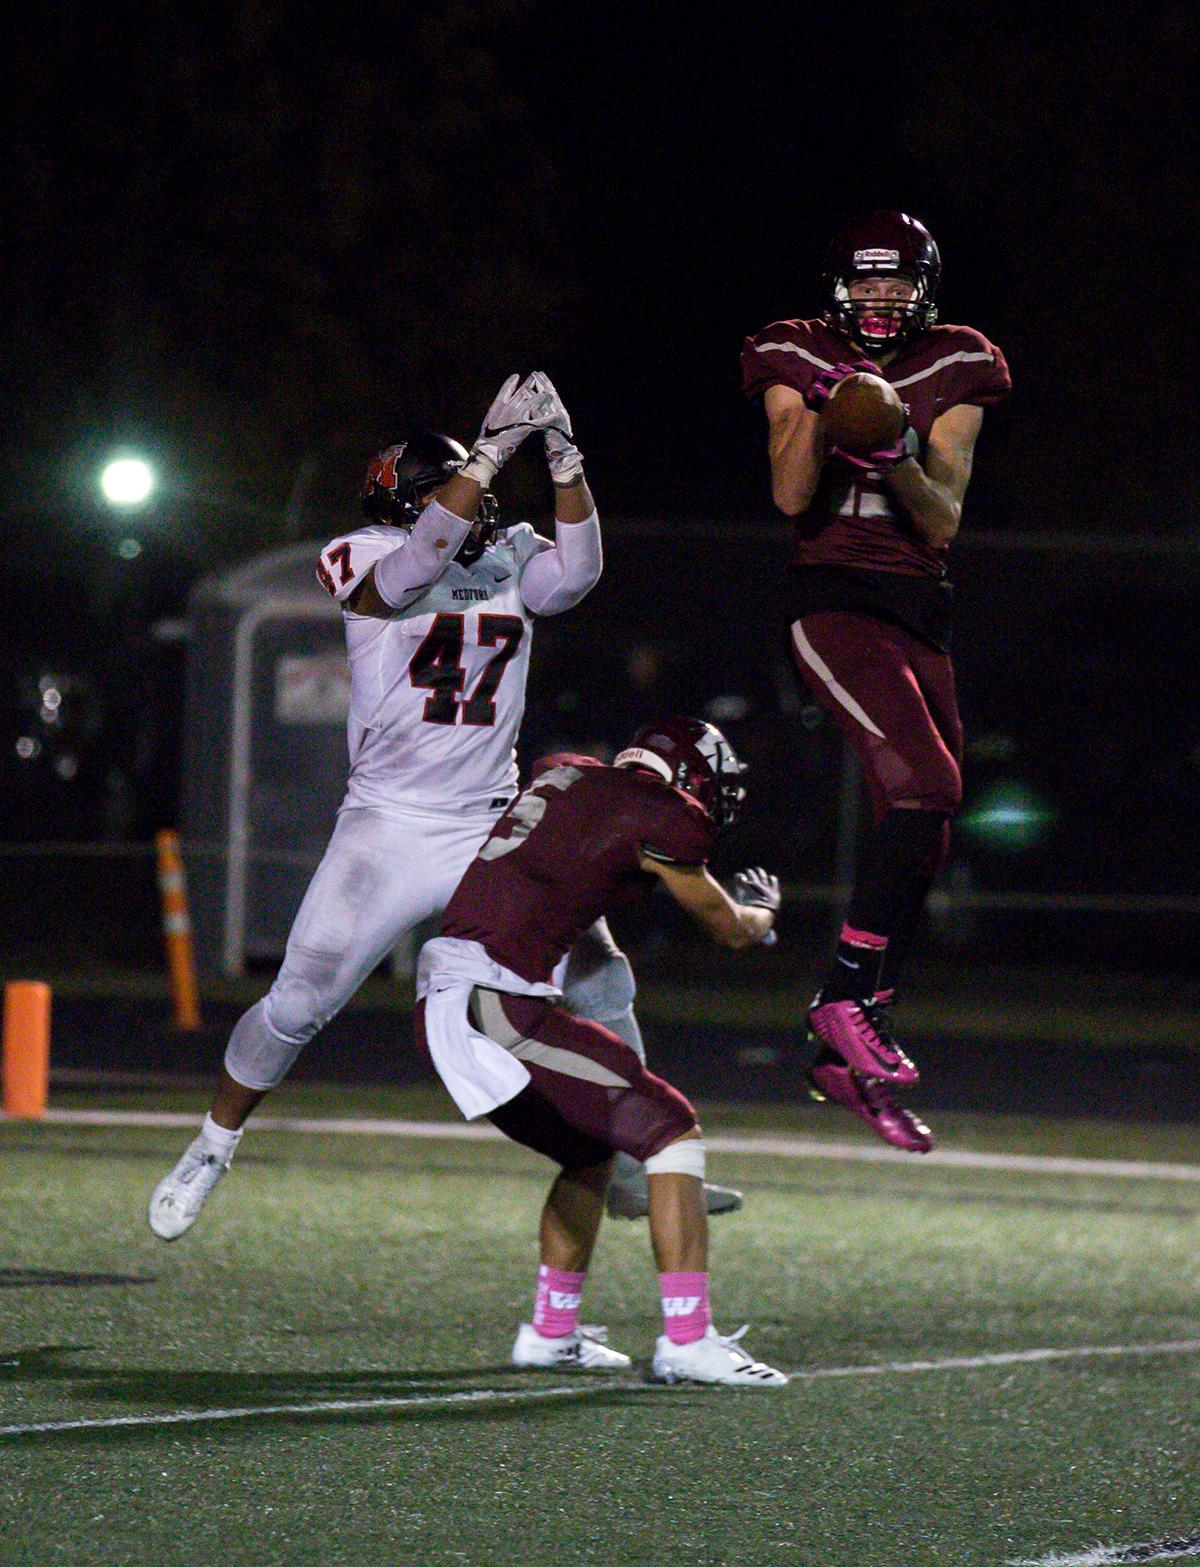 Willamette's Bryce Goggin (#13) intercepts a pass meant for North Medford's Isaac Manuel in North Medford's end zone. The North Medford Black Tornado defeated the Willamette Wolverines 45 – 19 on Friday, October 27, at Willamette High School, concluding the season for both teams. Photo by Kit MacAvoy, Oregon News Lab